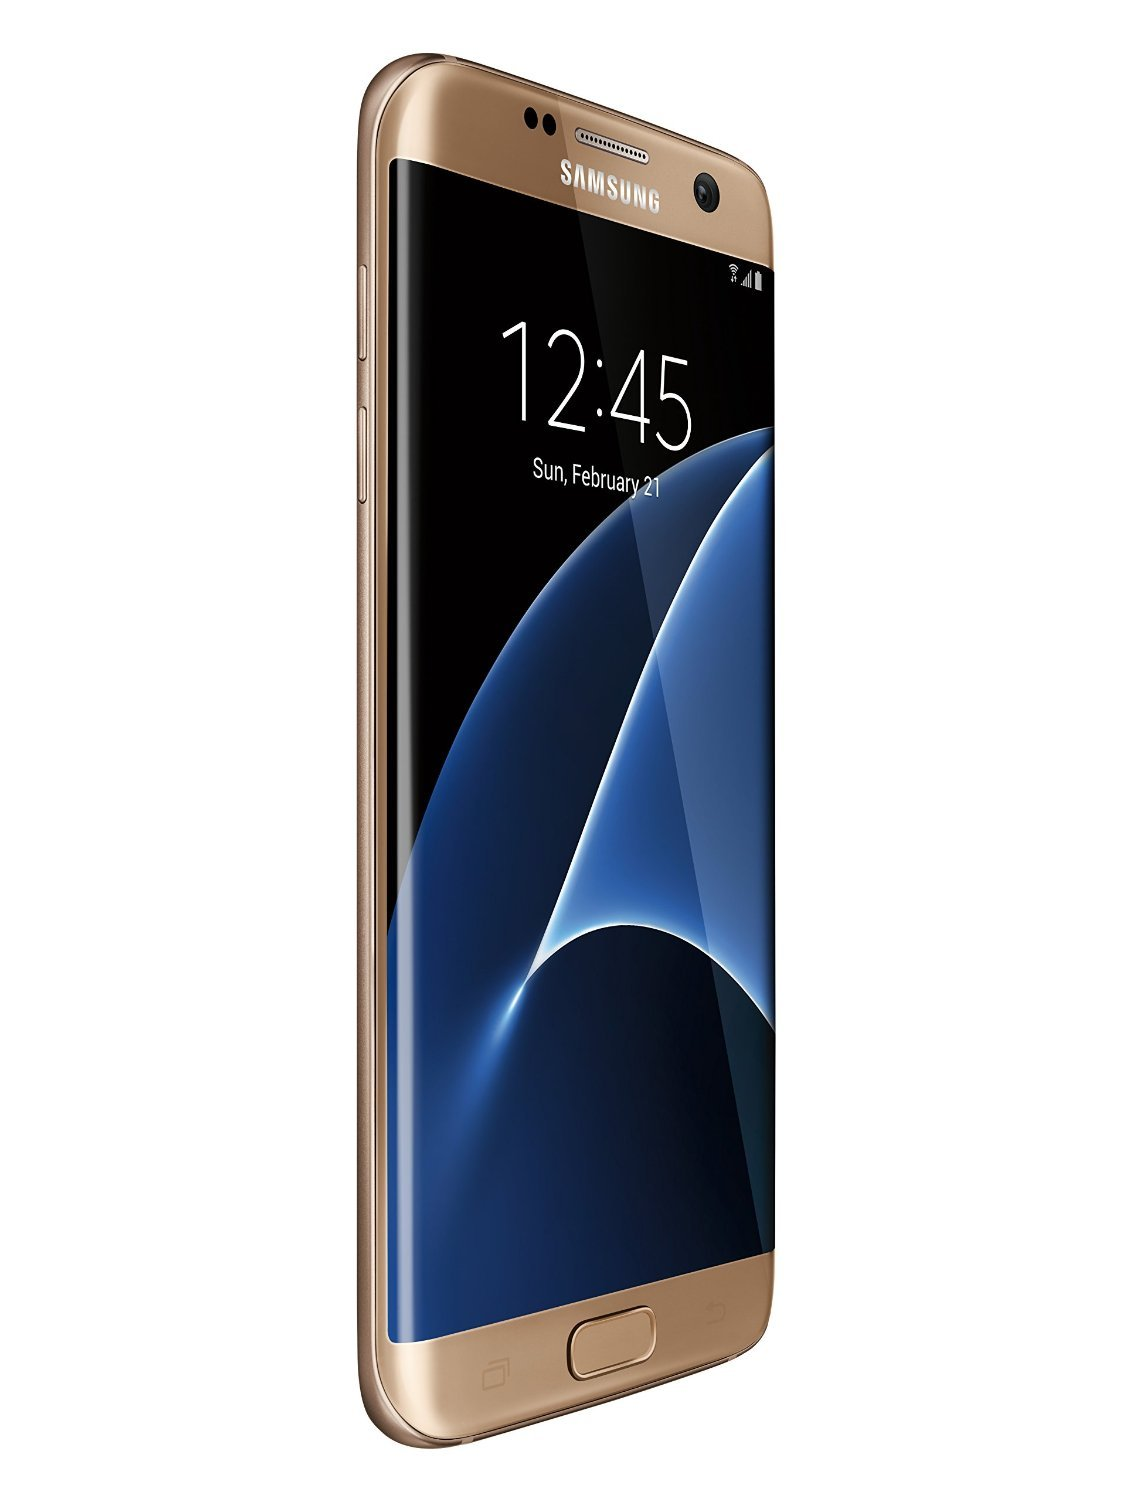 Samsung Galaxy S7 Edge 32GB G935T for T-Mobile - Gold Platinum (Certified Refurbished) by Samsung (Image #1)